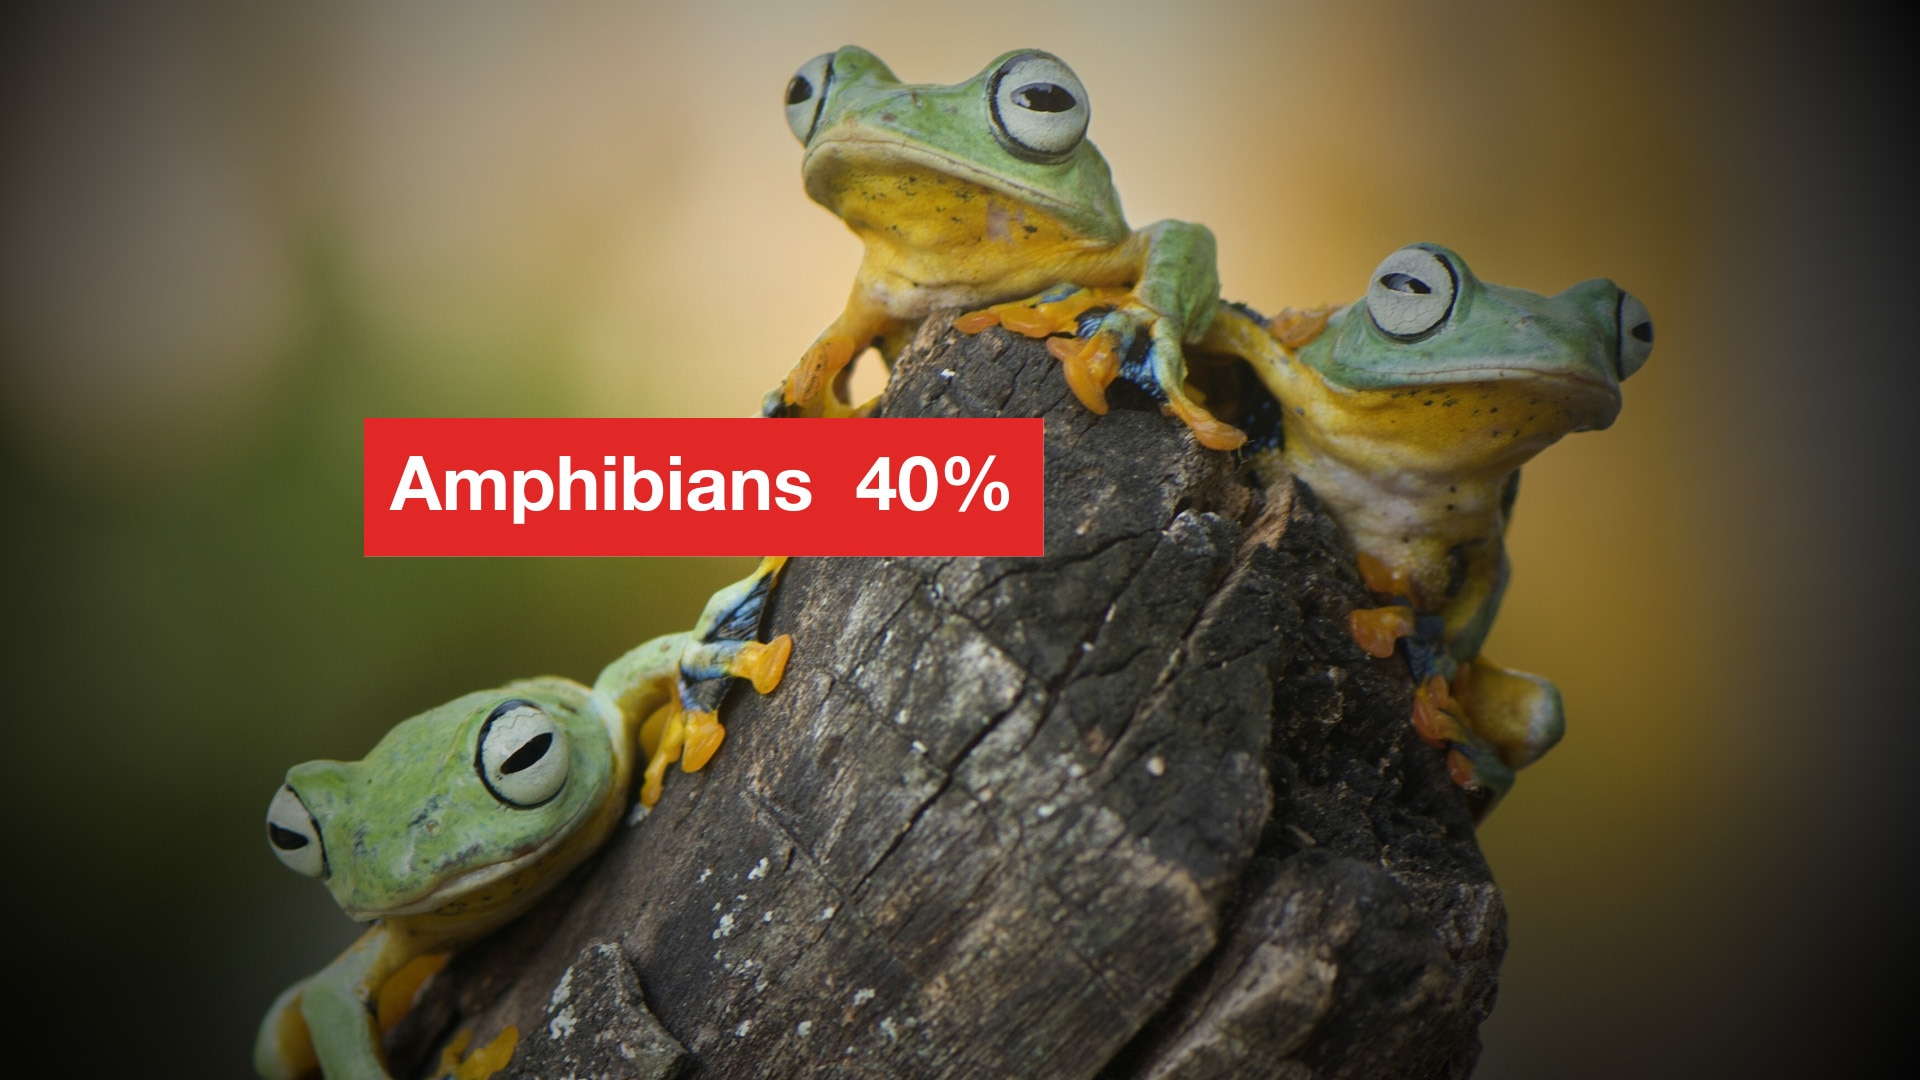 40 per cent of amphibians are threatened with extinction.